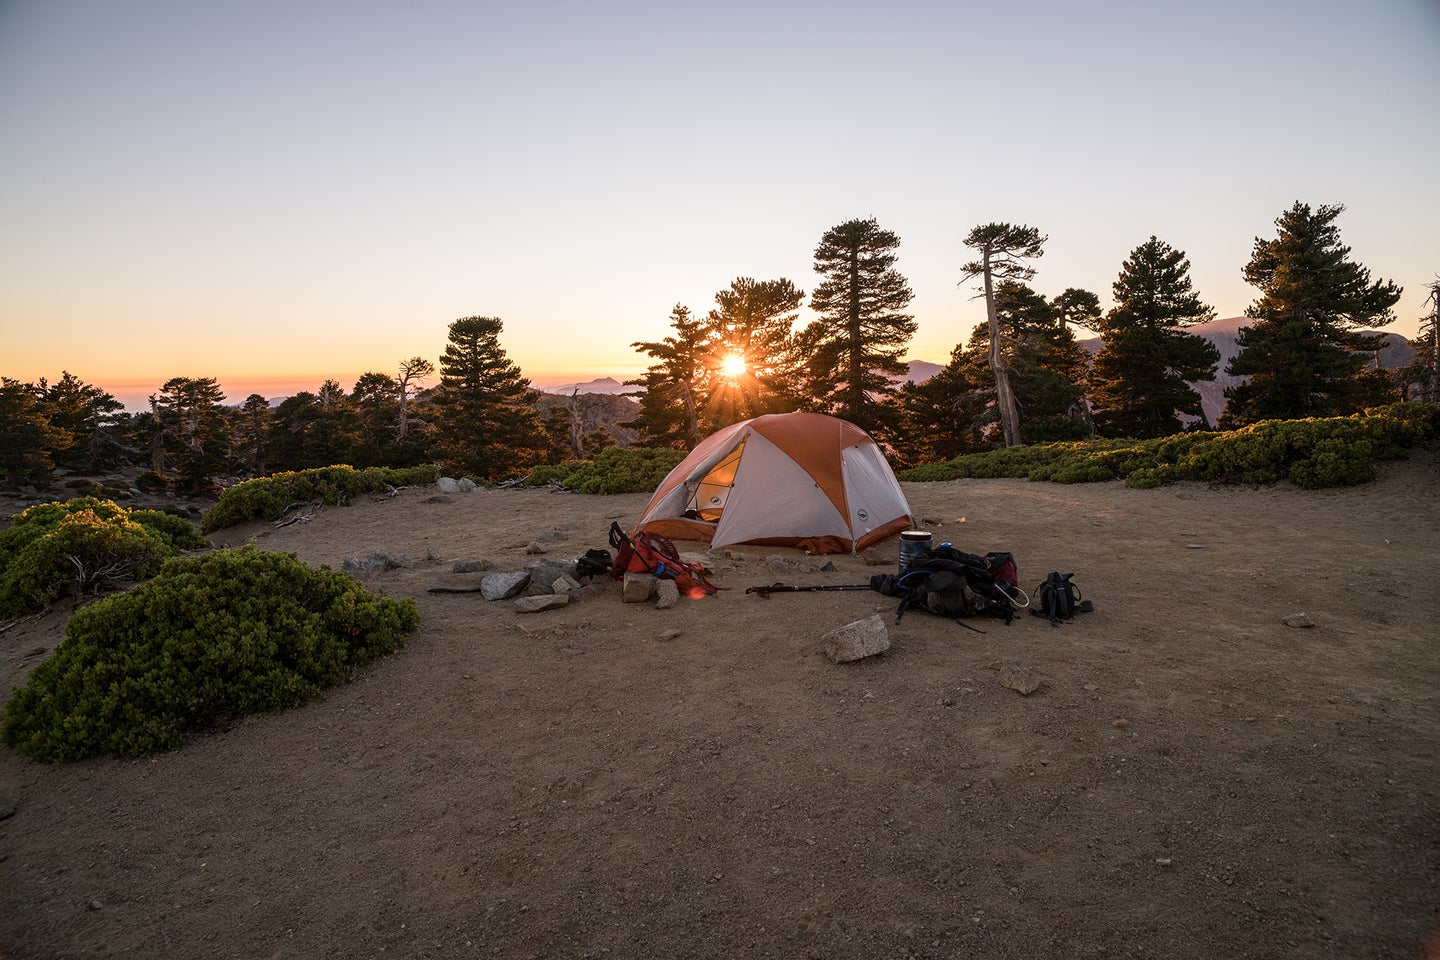 tent and campground